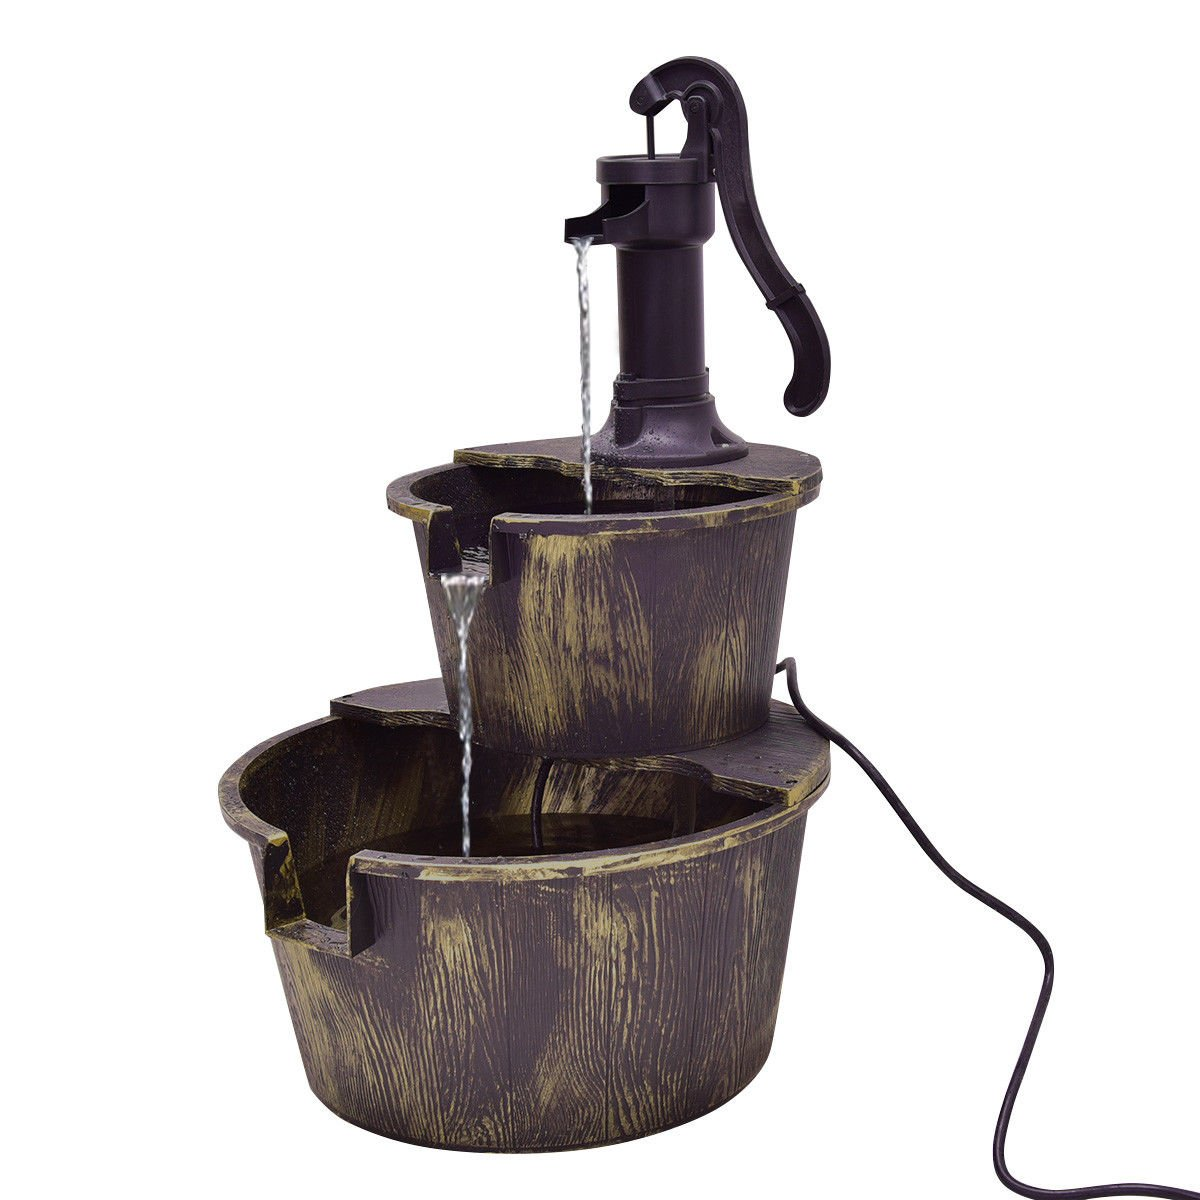 Waterfall Fountain 3 Tier Barrel Pump Outdoor Garden Imitating Bronze Color